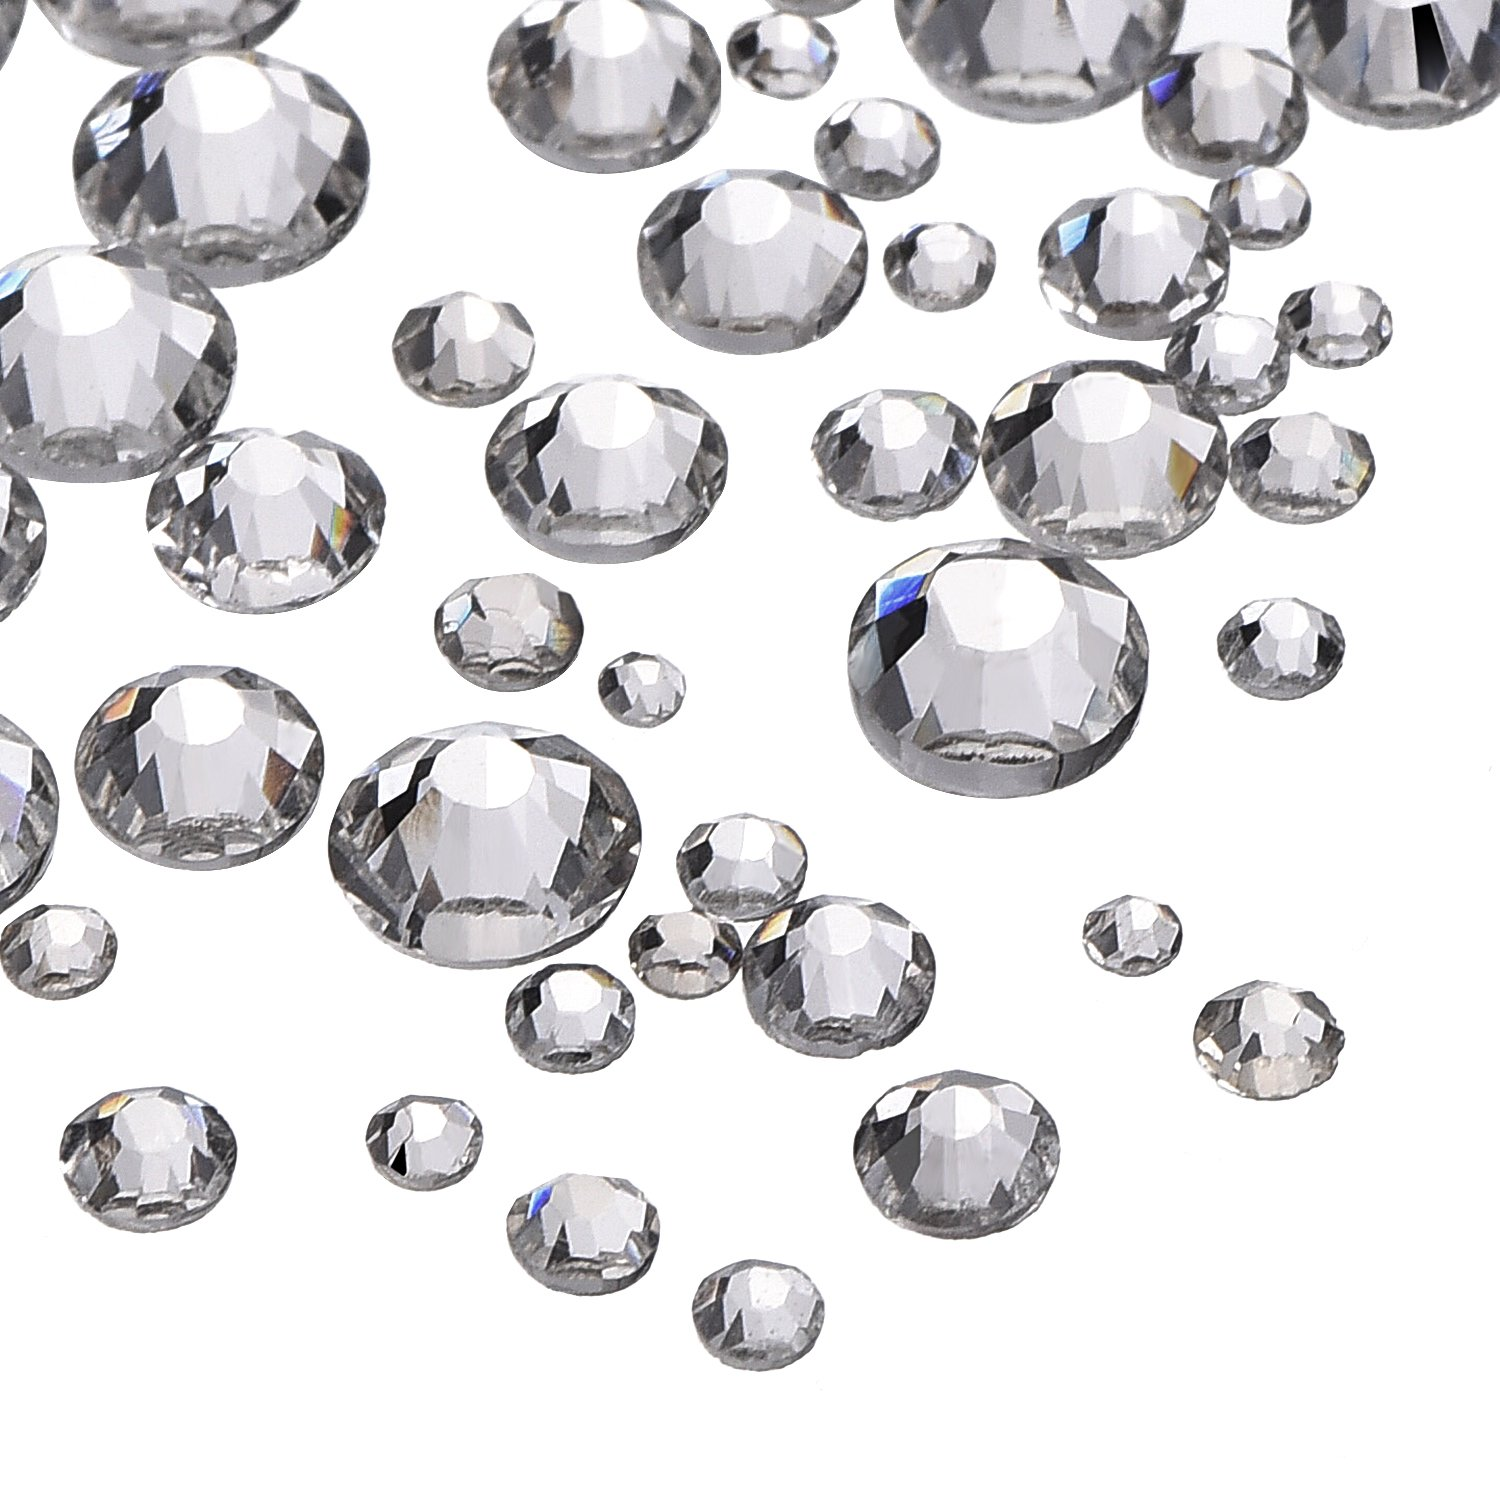 Rhinestone jewels for crafts - Outus 1000 Pieces Clear Flat Back Rhinestones Round Crystal Gems 1 5 Mm 5 Mm 5 Sizes